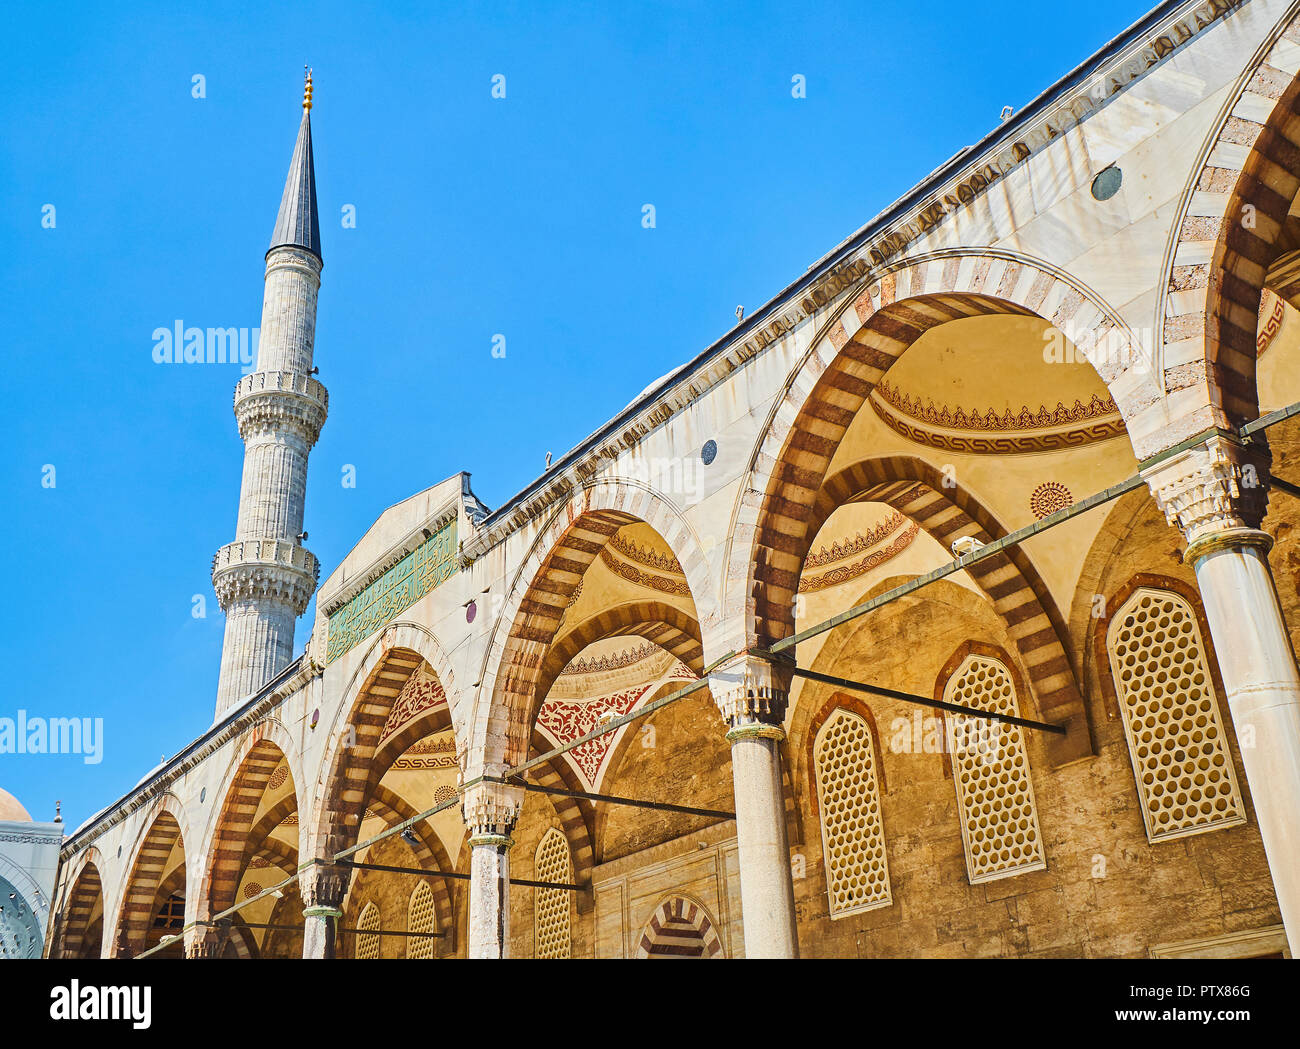 Arcaded courtyard of The Sultan Ahmet Camii Mosque, also known as The Blue Mosque, with a minaret in the background. Istanbul, Turkey. - Stock Image